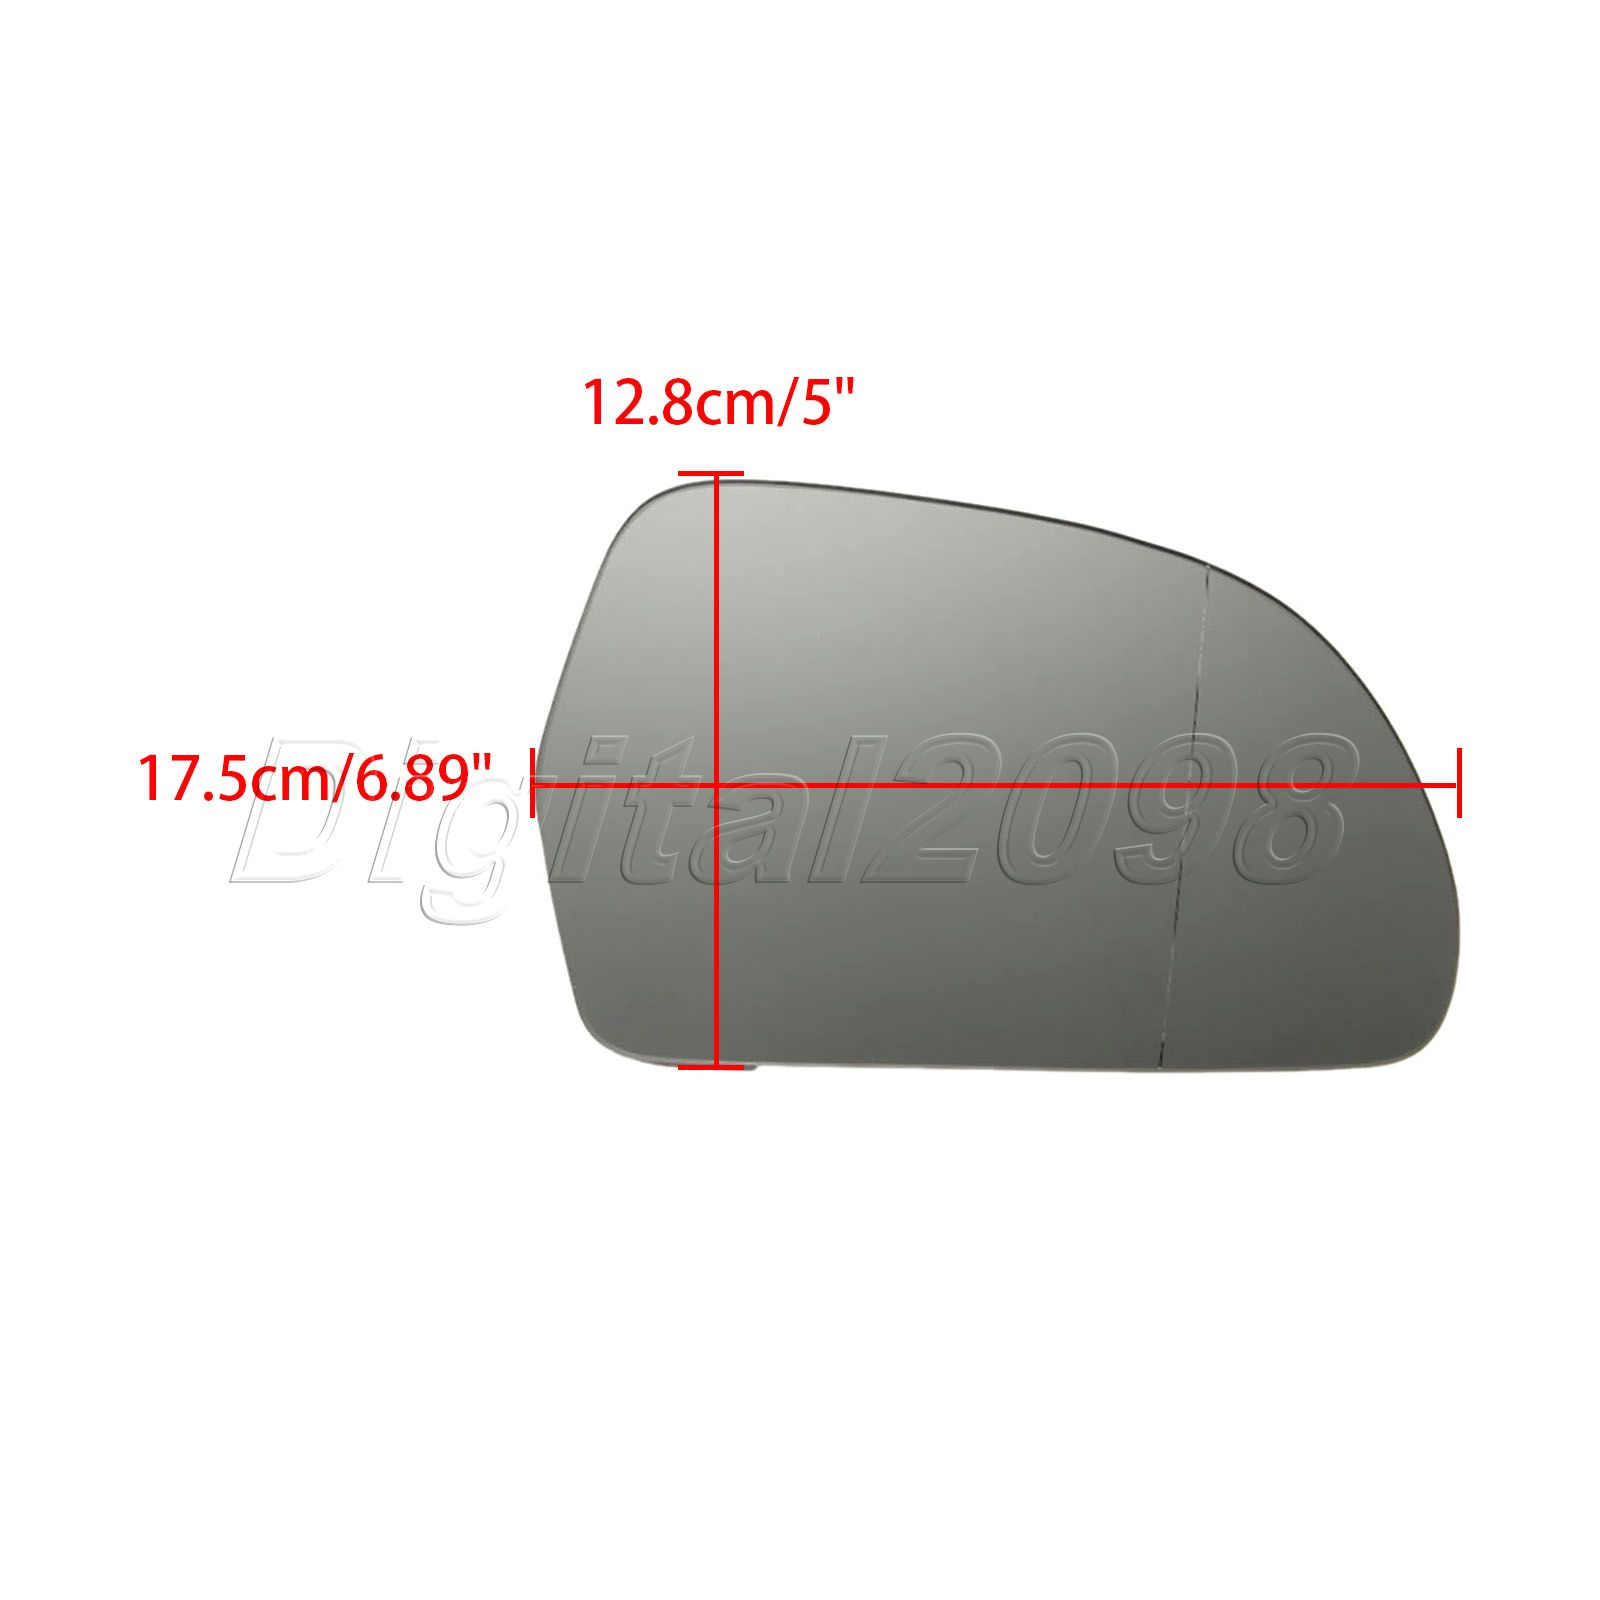 2pcs lr car heated door wing mirror glass rearview side mirrors for 2pcs lr car heated door wing mirror glass rearview side mirrors for audi a3 a4 s4 a5 a6 s6 a8 allroad q3 skoda octavia superb in mirror covers from planetlyrics Image collections